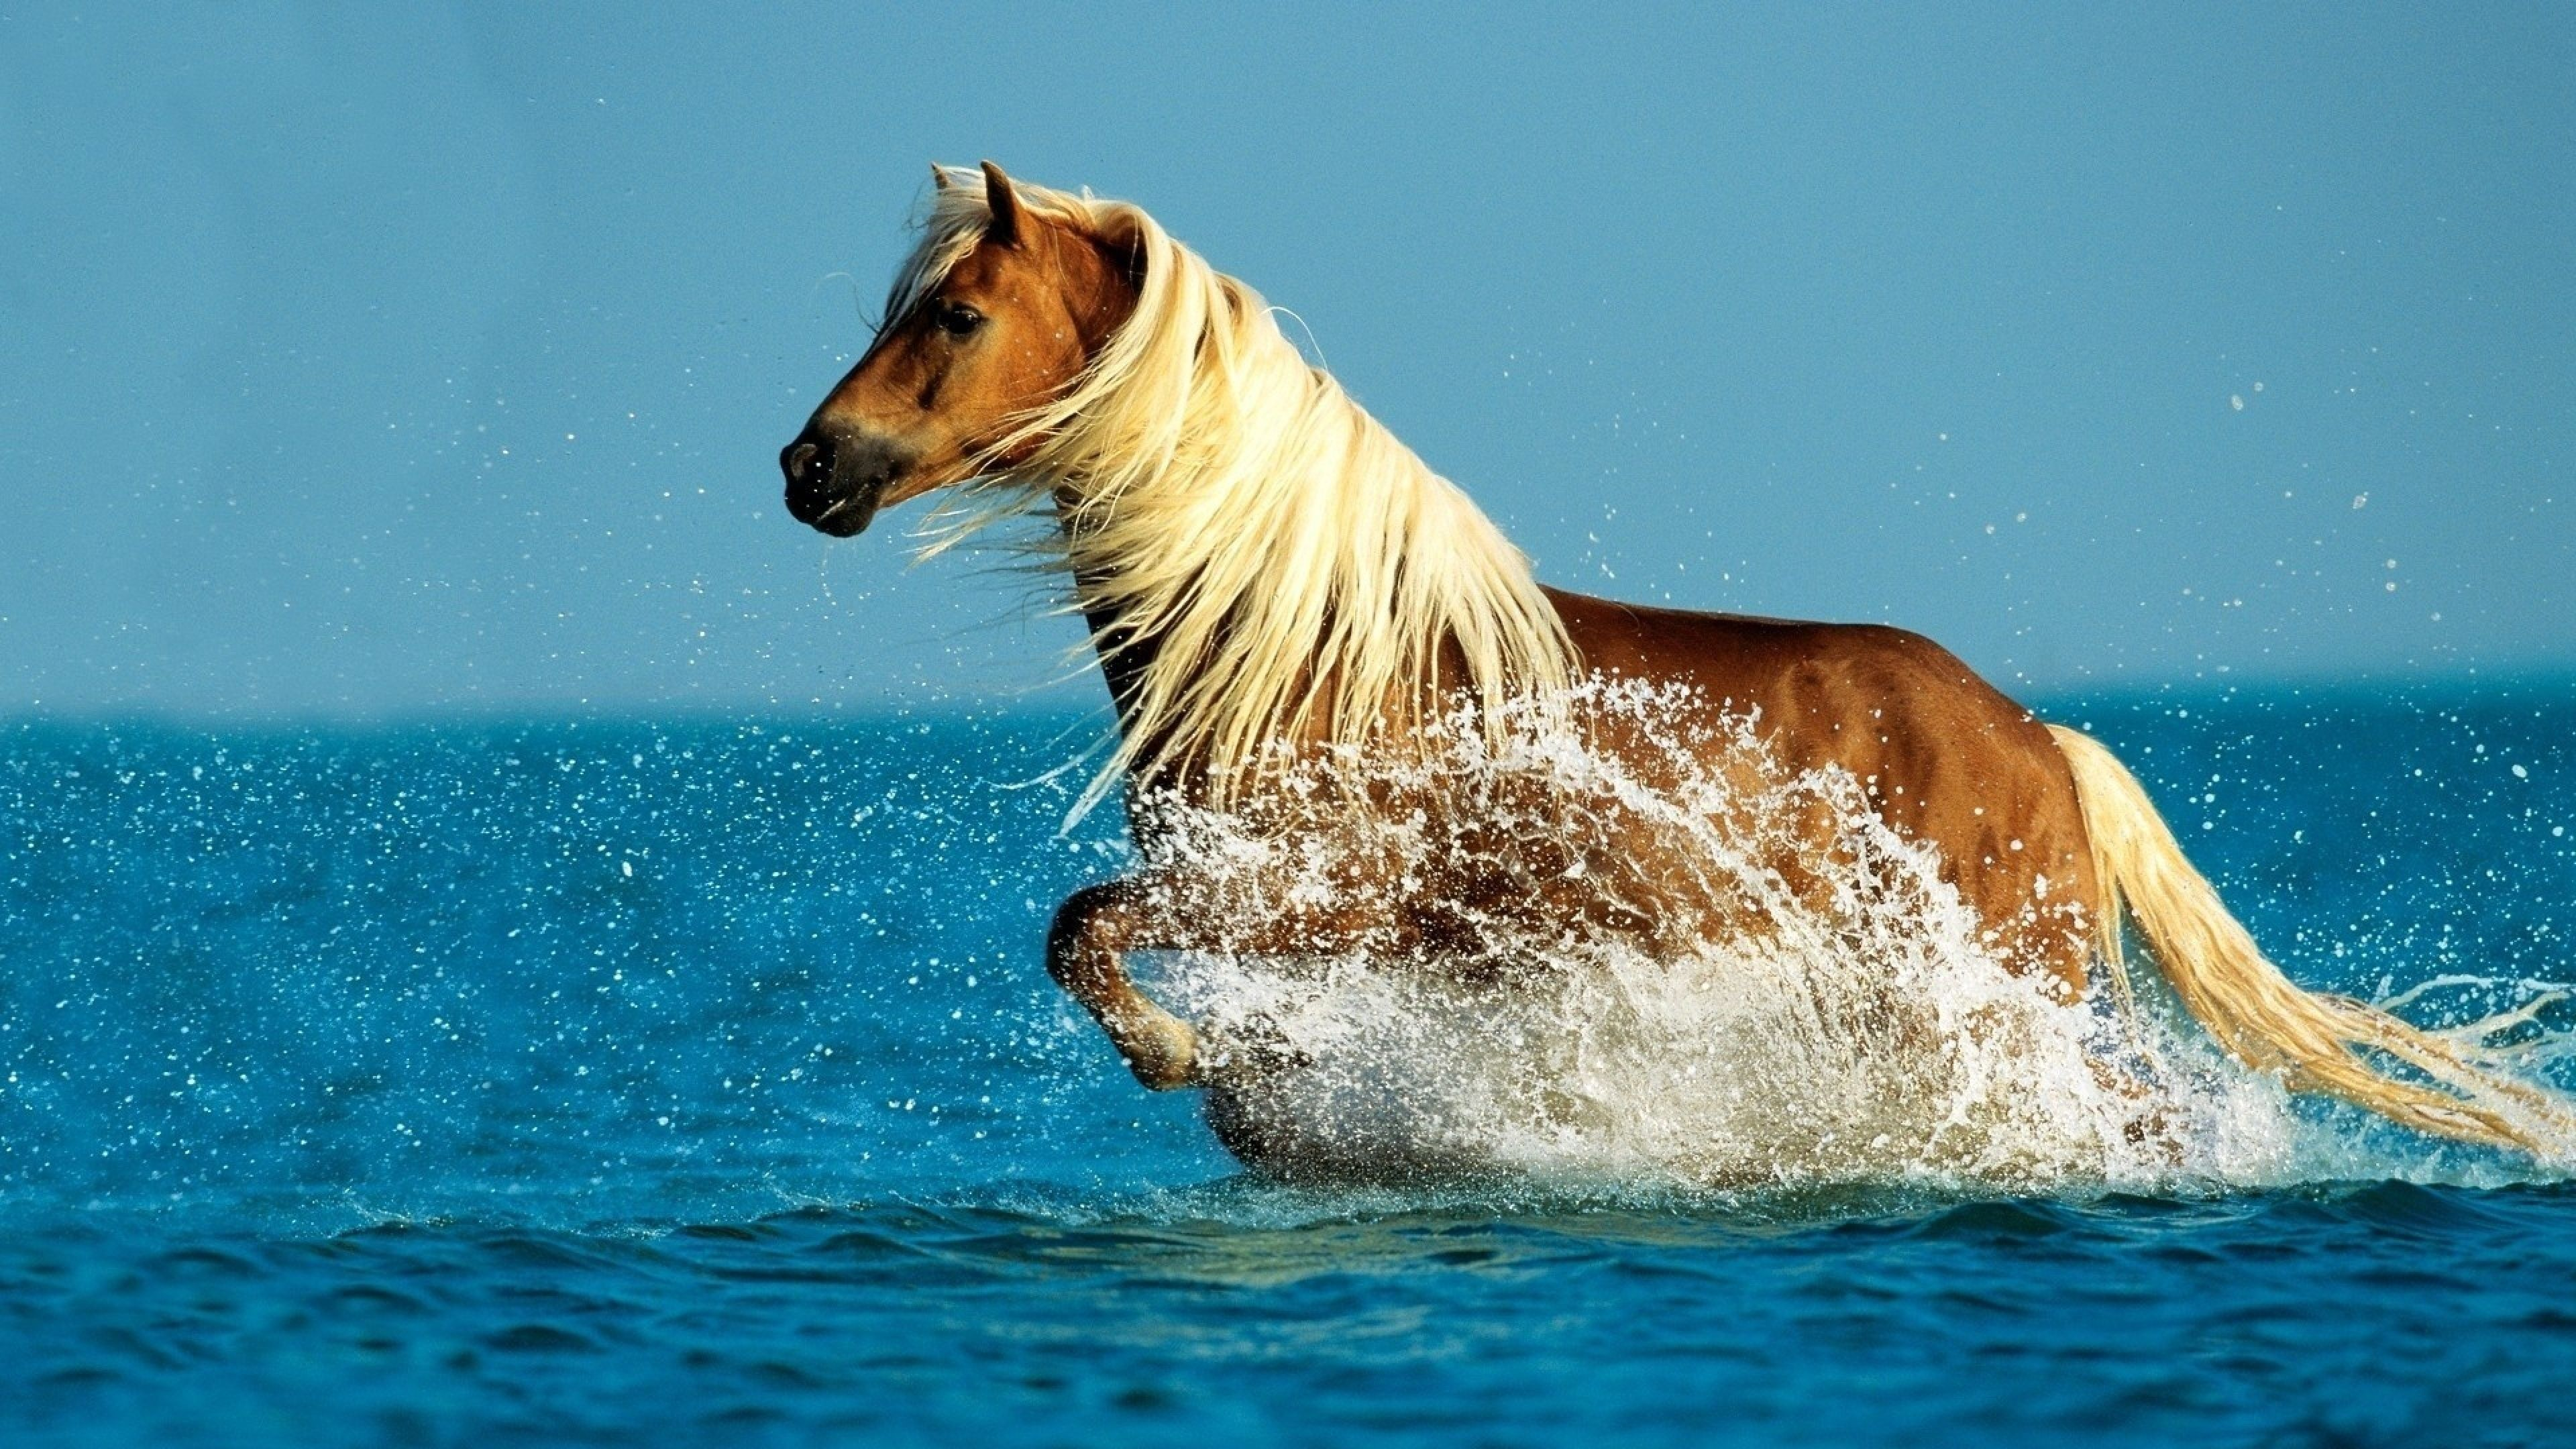 Great Wallpaper Horse Ultra Hd - 0b26609931e4a56438adac877f32e772  Pic_605811.jpg